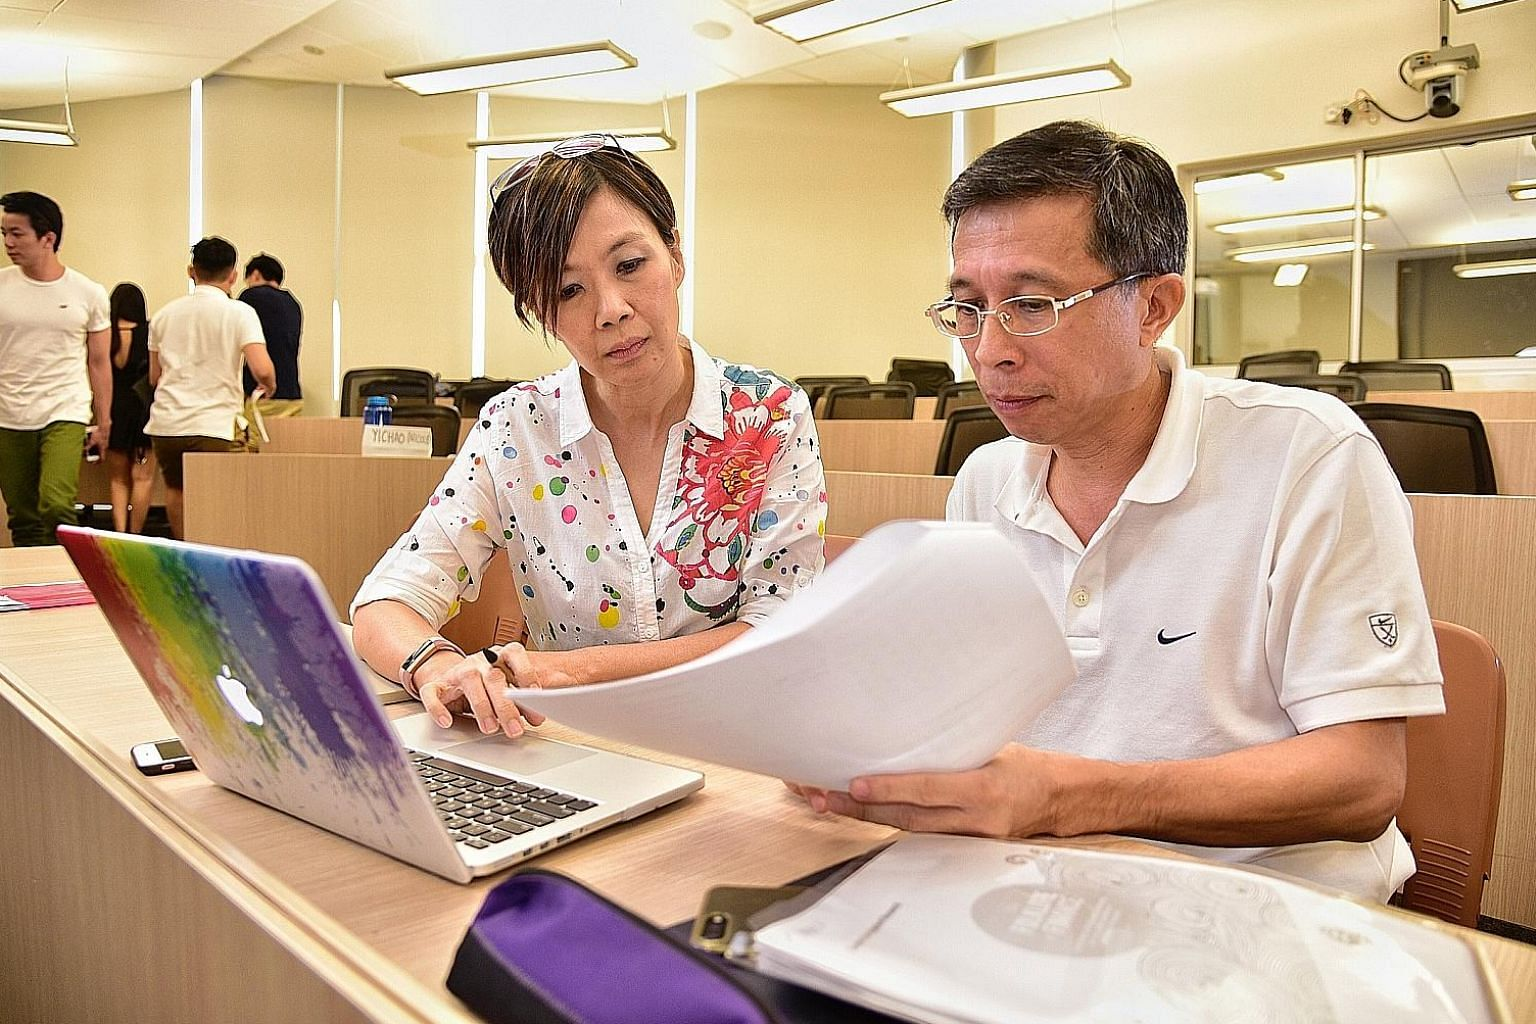 NUS alumni Genevieve Yeep and Lim Swee Hock are taking a business school module in personal finance and private wealth management at the university.